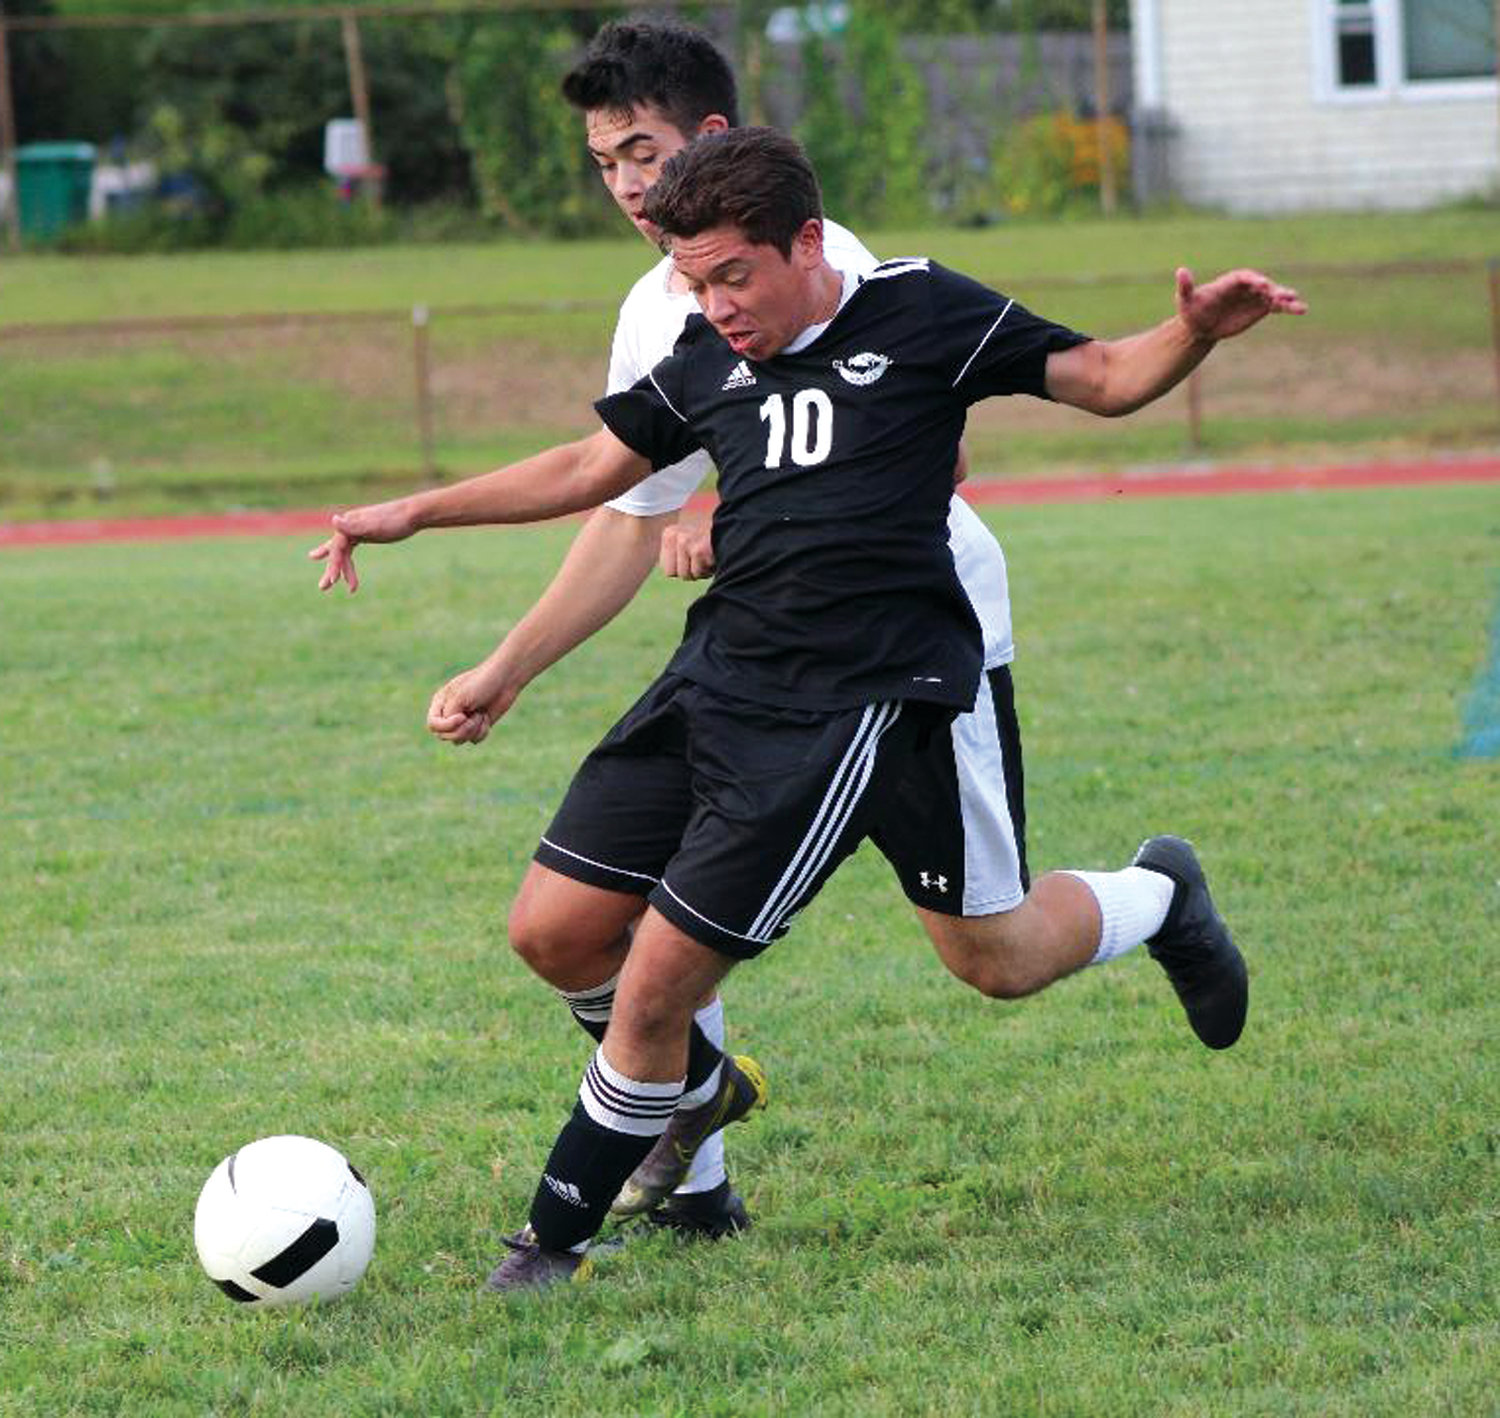 UP THE FIELD: Pilgrim's Josh Delaroca battles for possession.